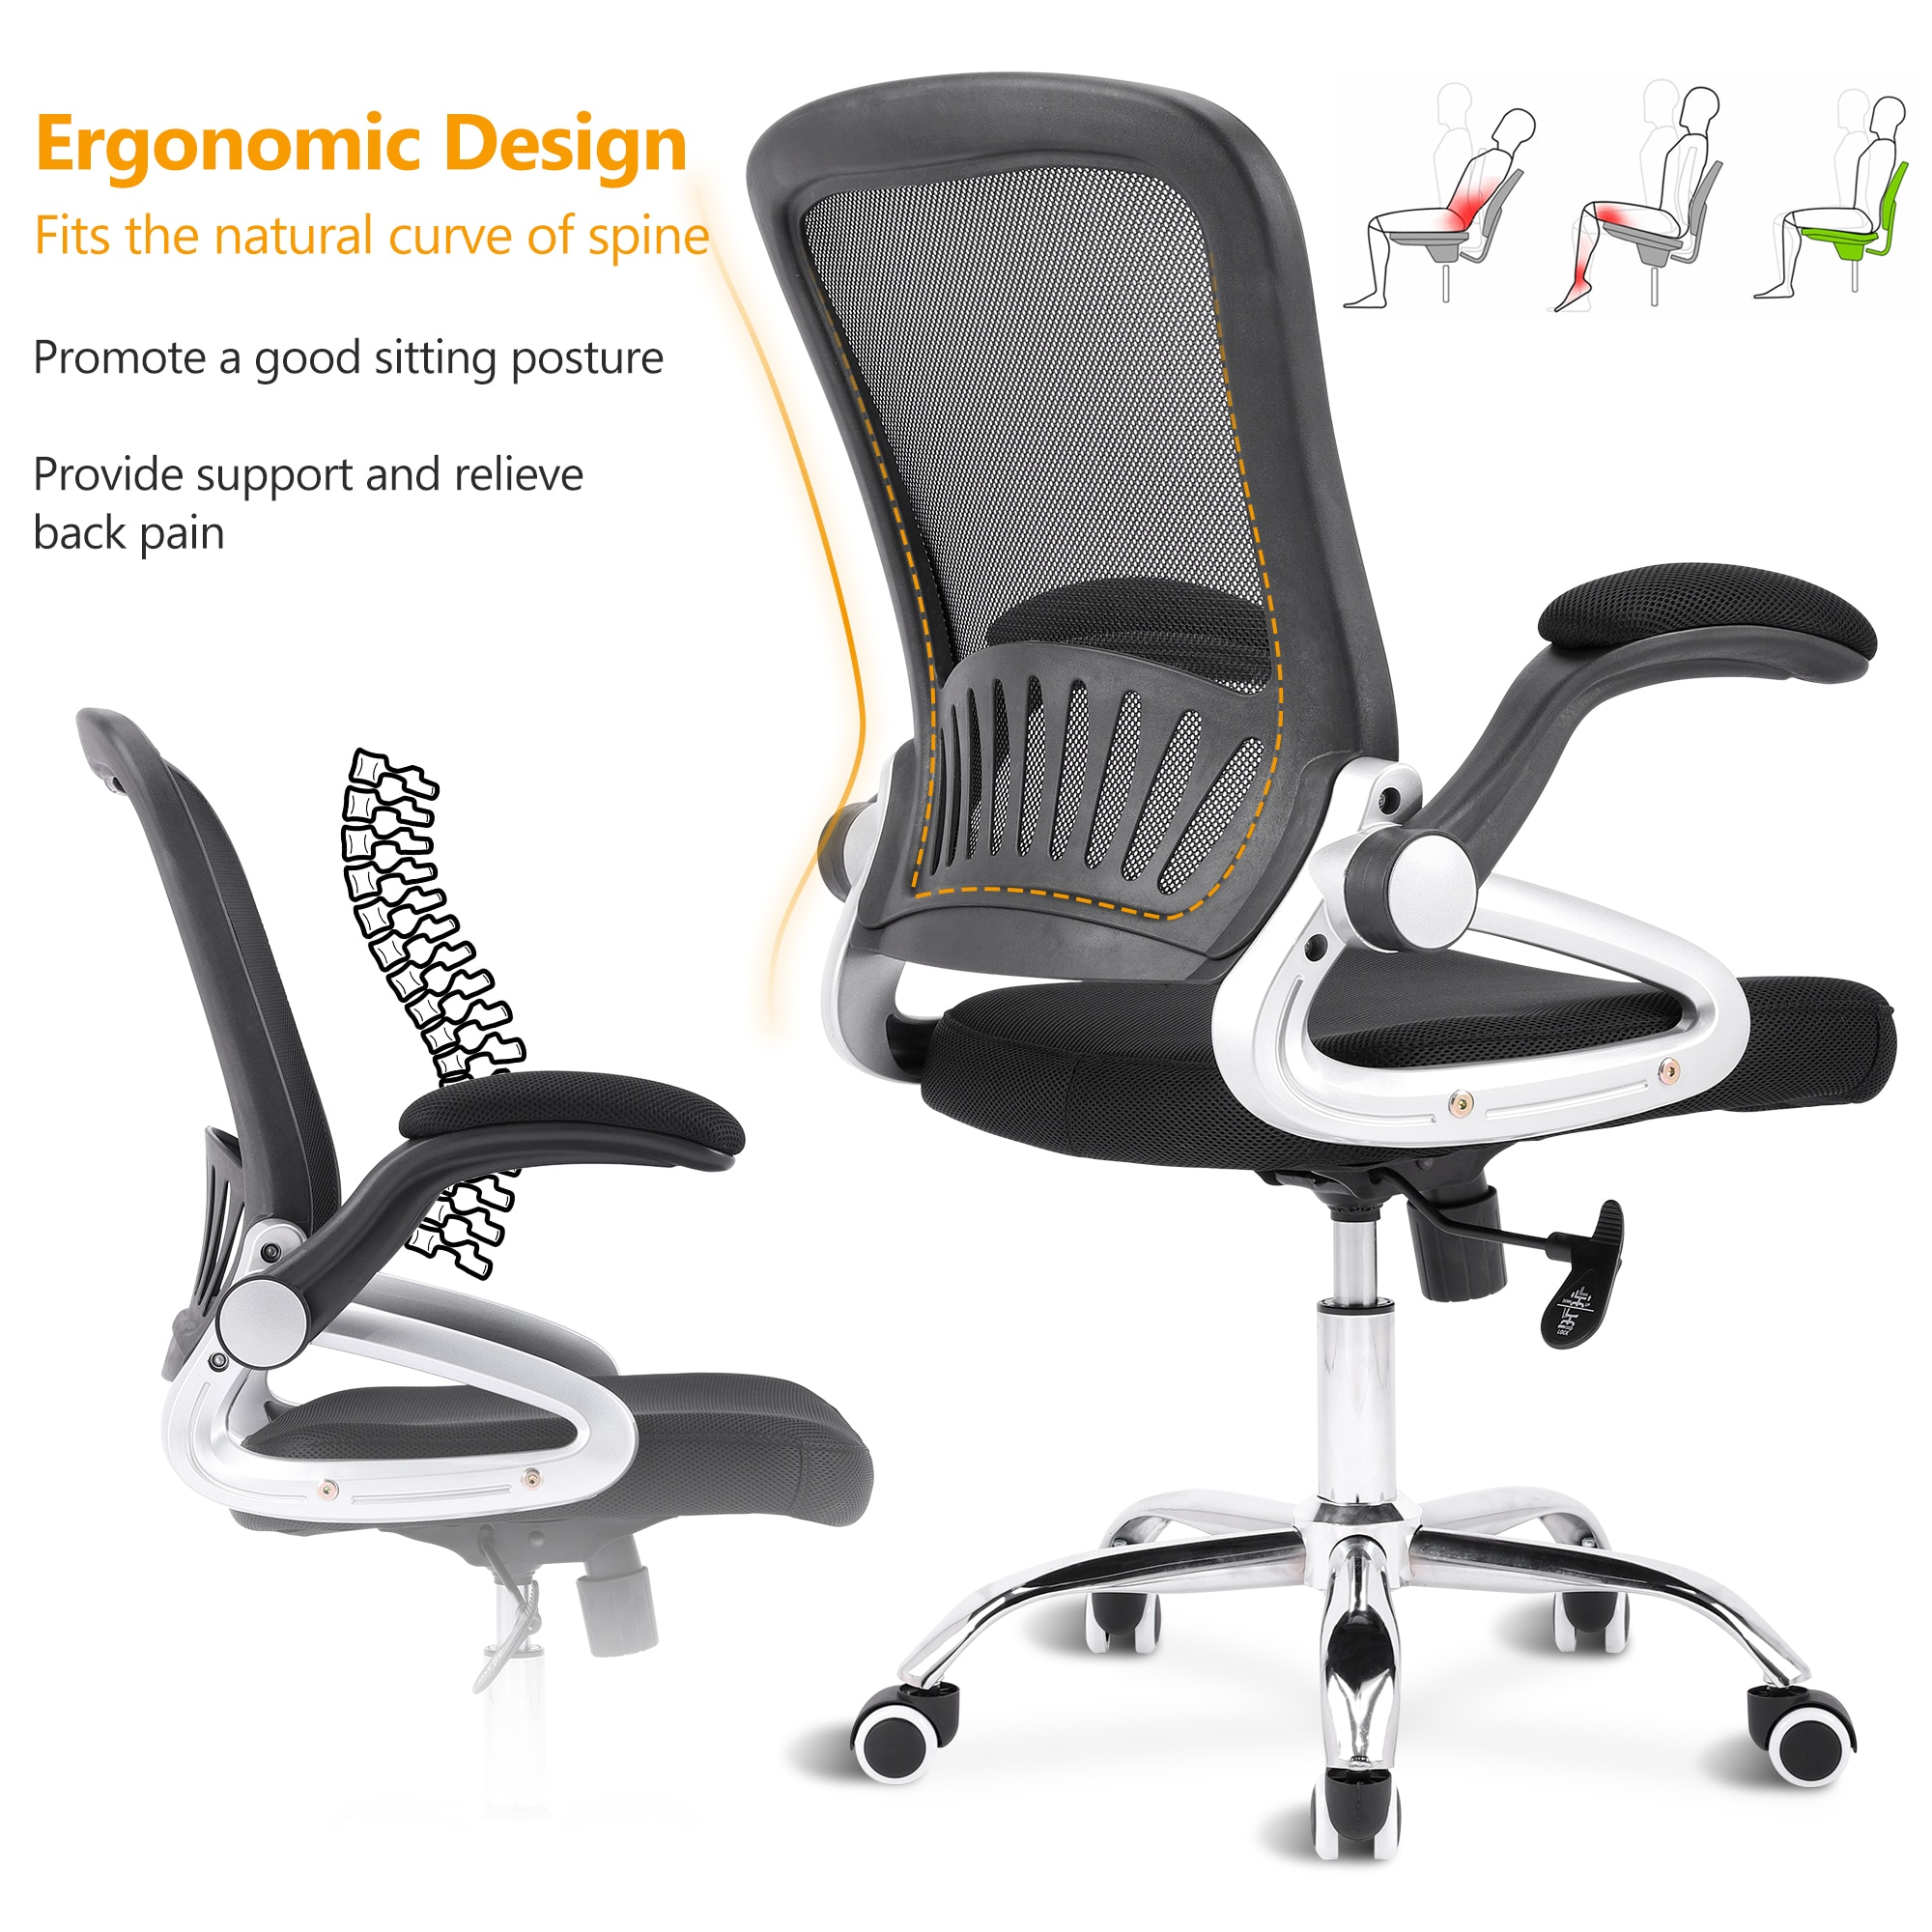 H24e3191bde0d45f783d12b41b3b3033c3 - Sigtua Swivel Office Chair Height-adjustable Desk Chair Breathable PC Chair Comfortable Ergonomic Executive Computer Chair Black